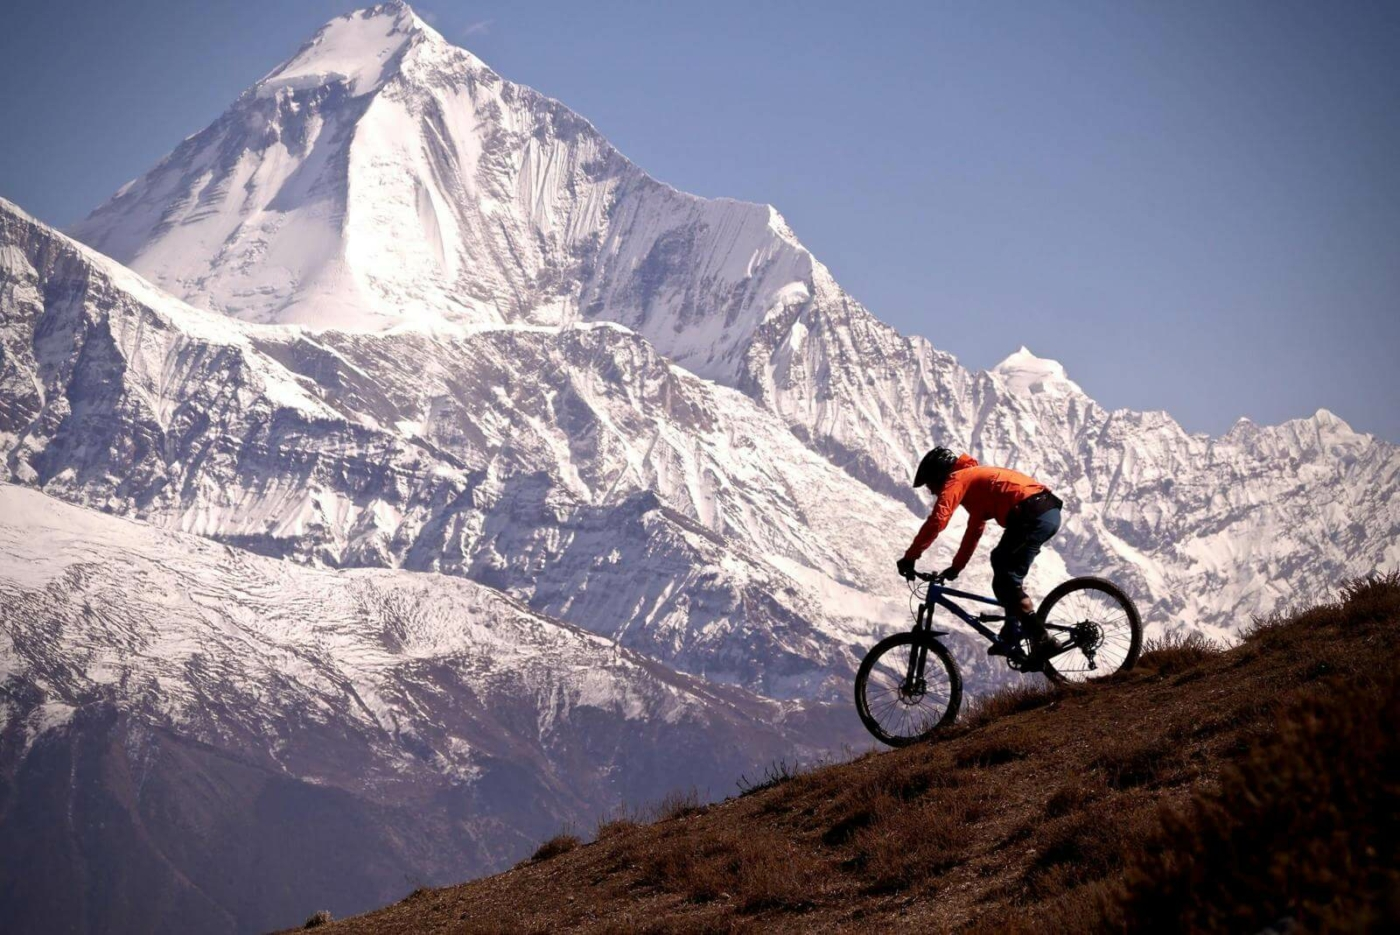 Mountain Biker going down a steep hill with snow-covered mountain in the background